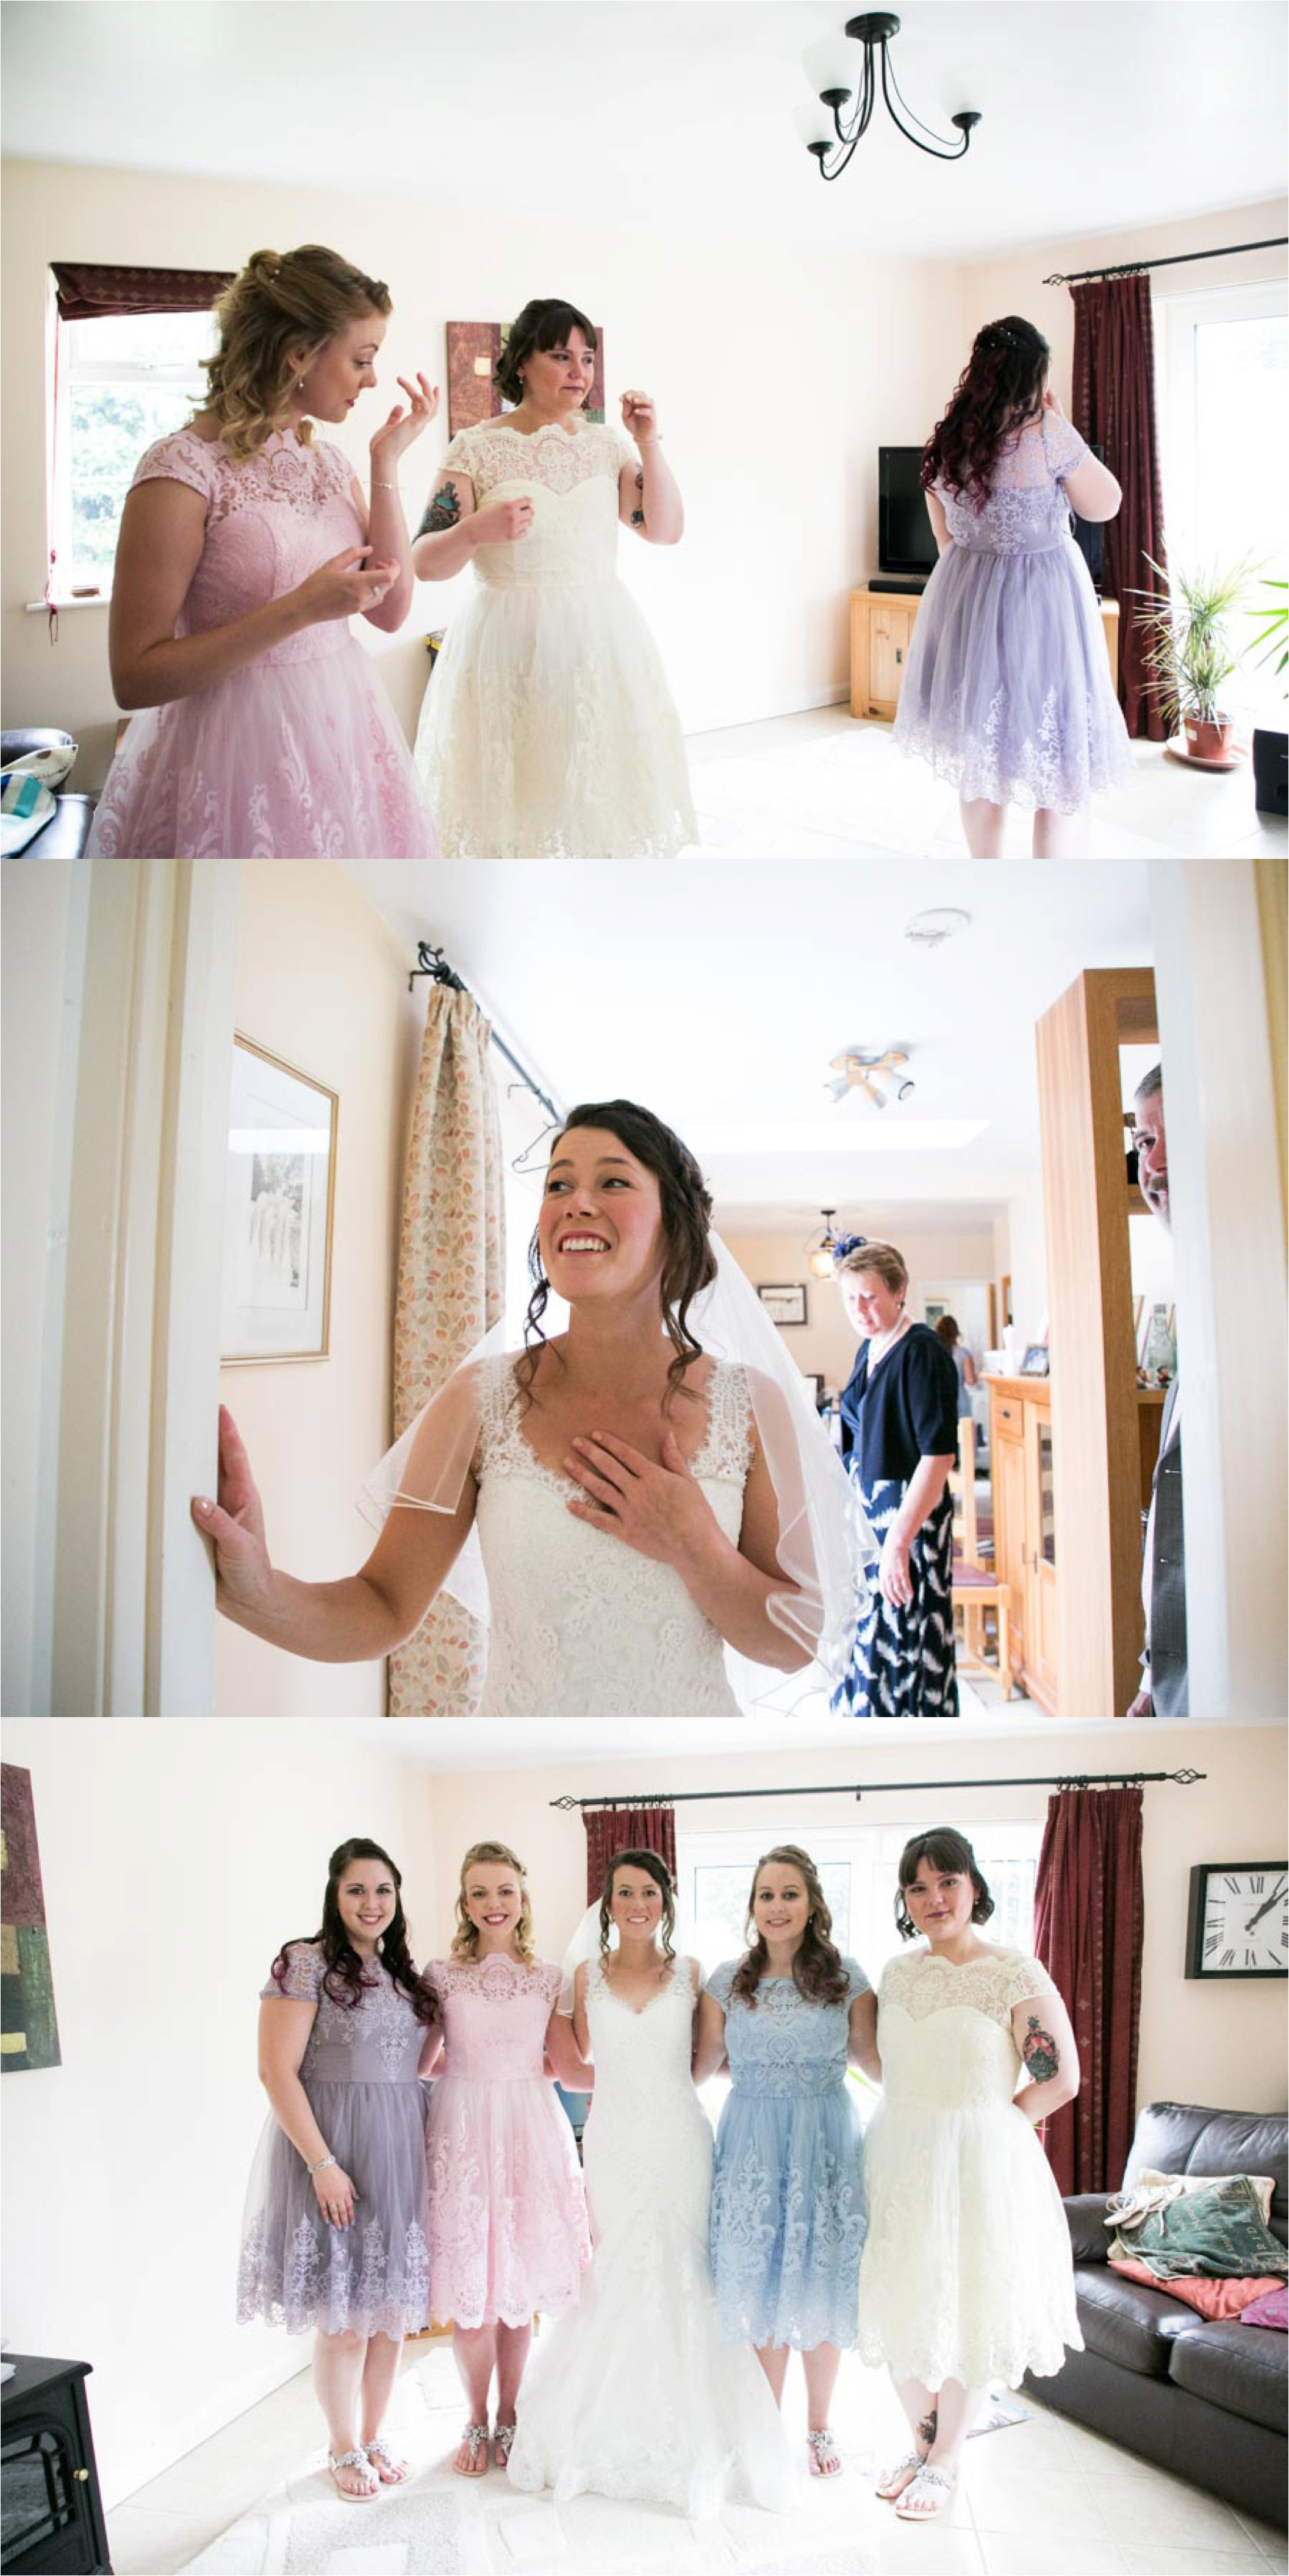 emotional bride and pastel shades on bridesmaids